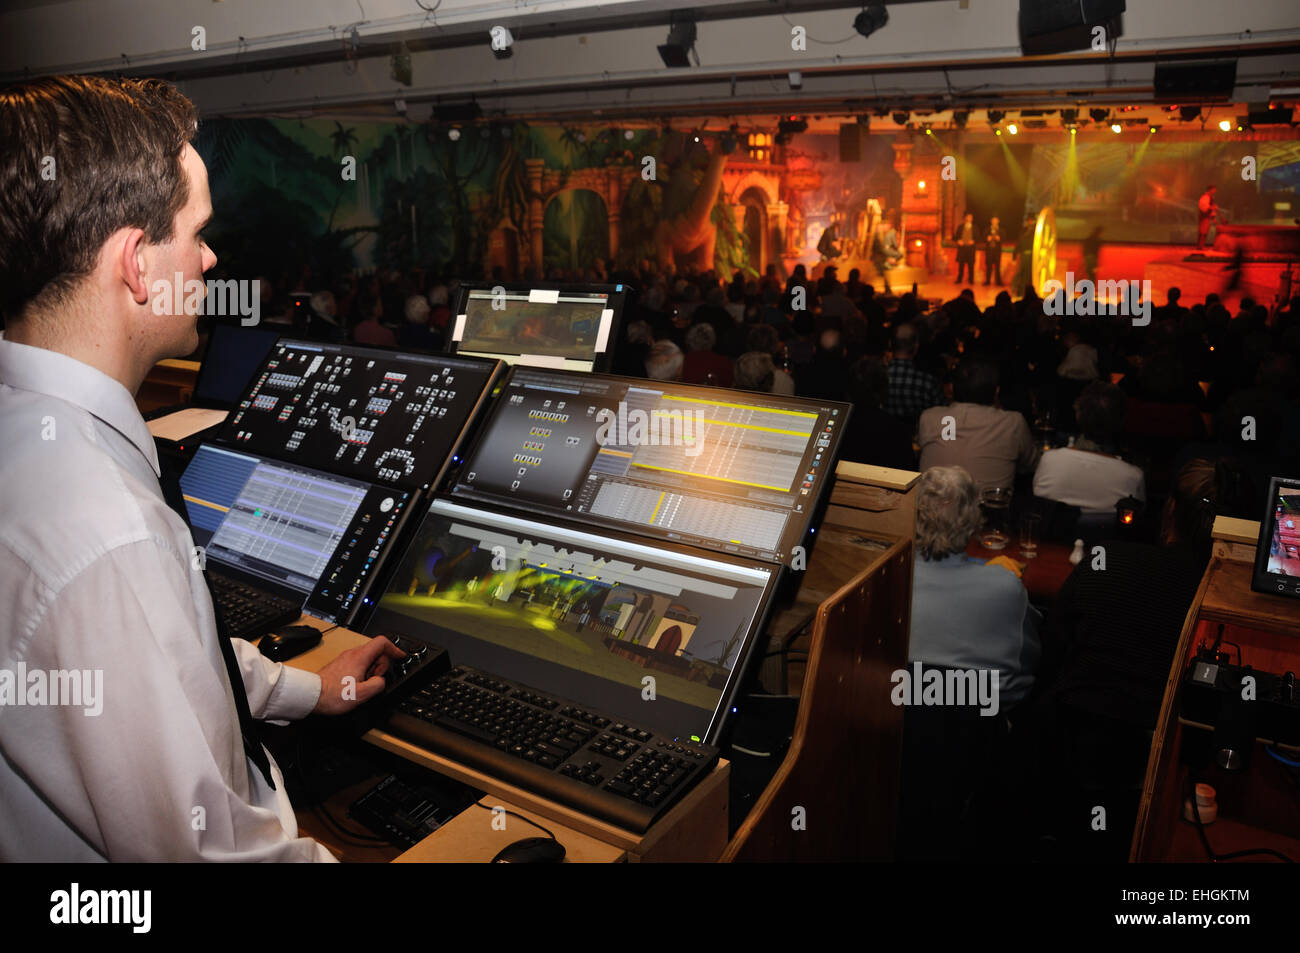 lighting technician. A Lighting Technician Controls Special Effects For Live Stage Performance